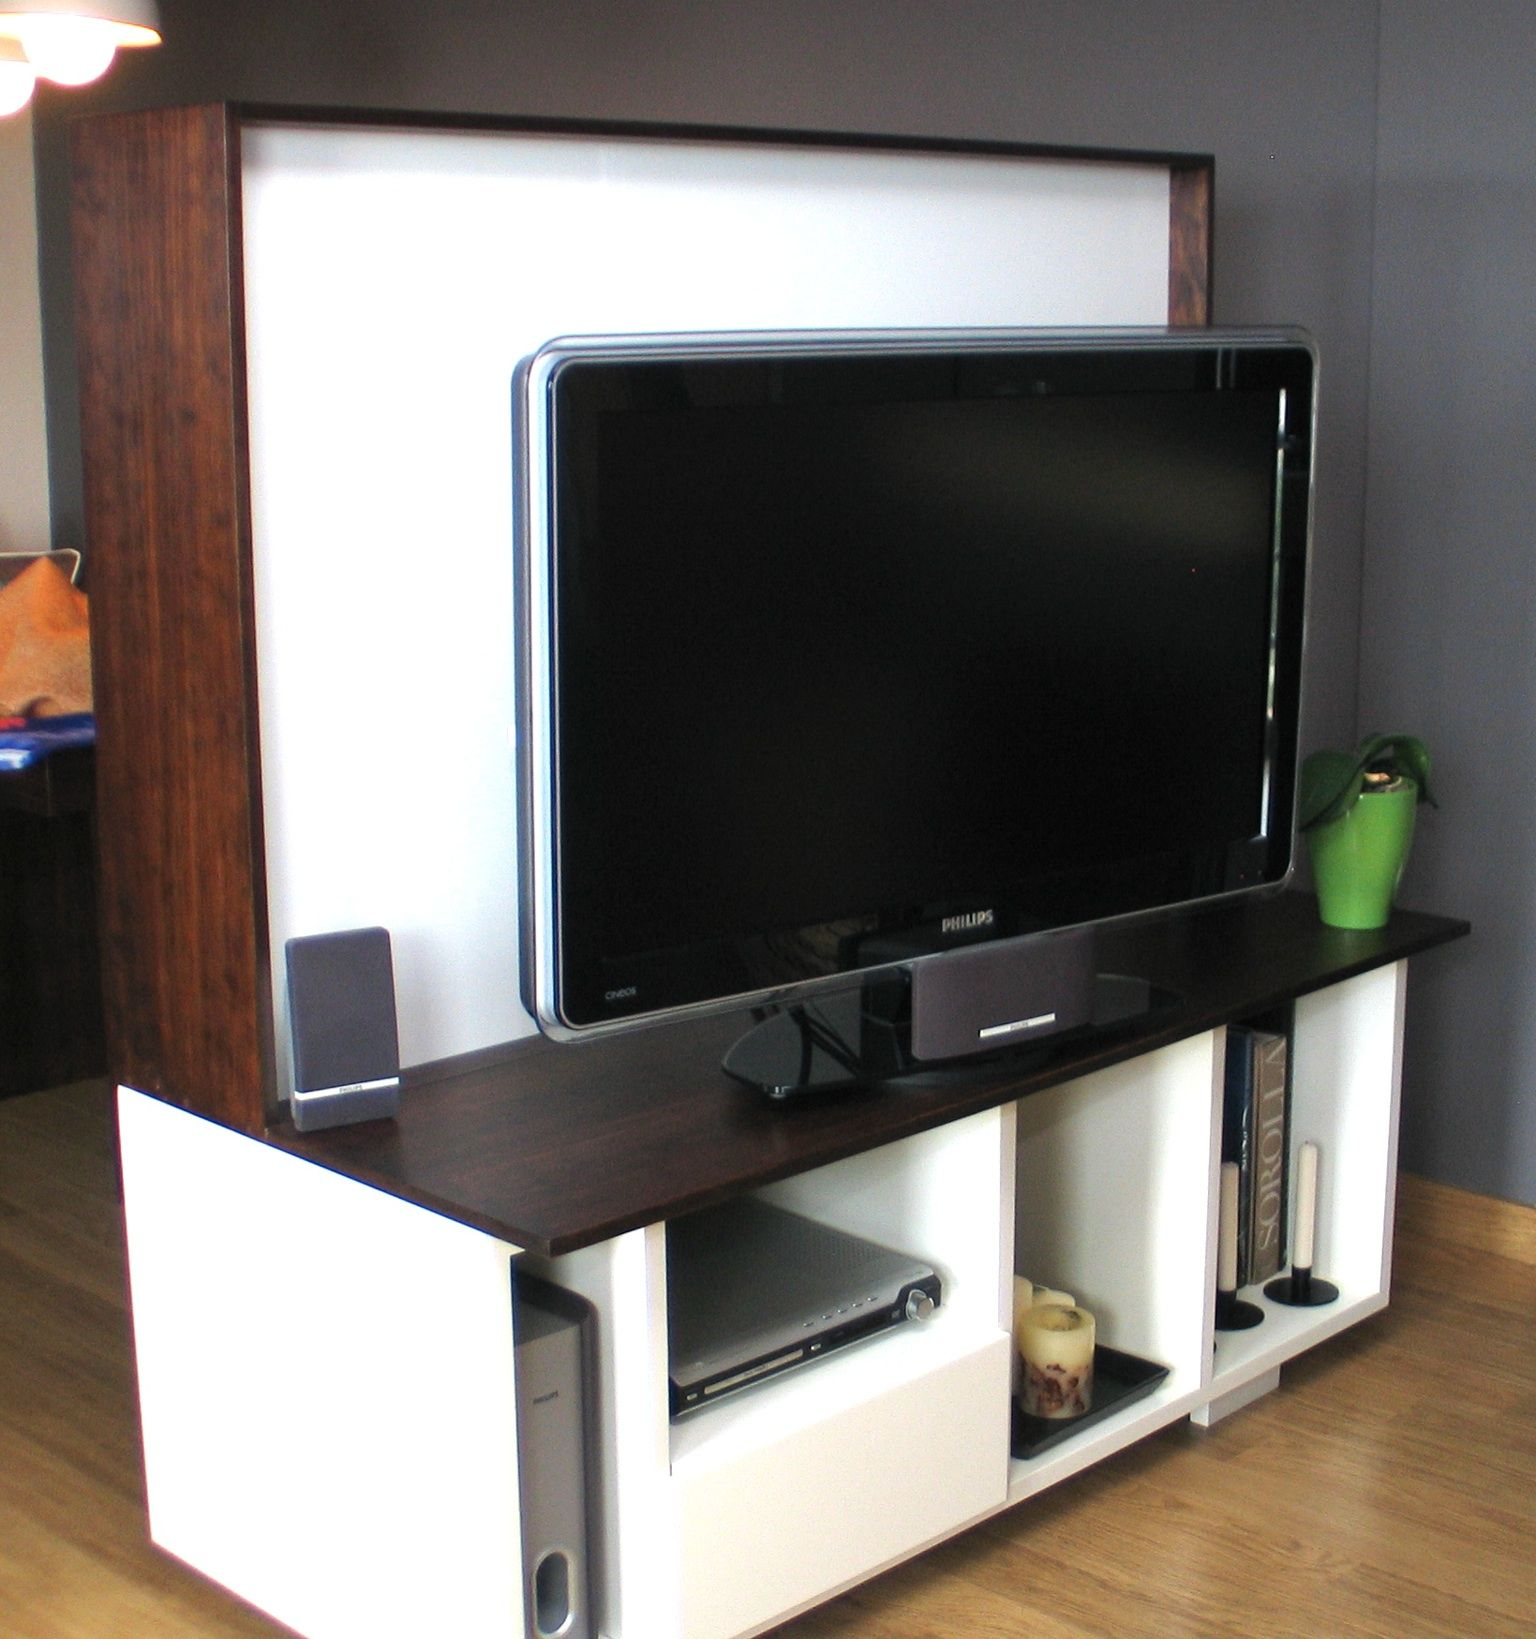 Mueble tv separador de ambientes para ambilight de philips for Mueble separador de ambiente